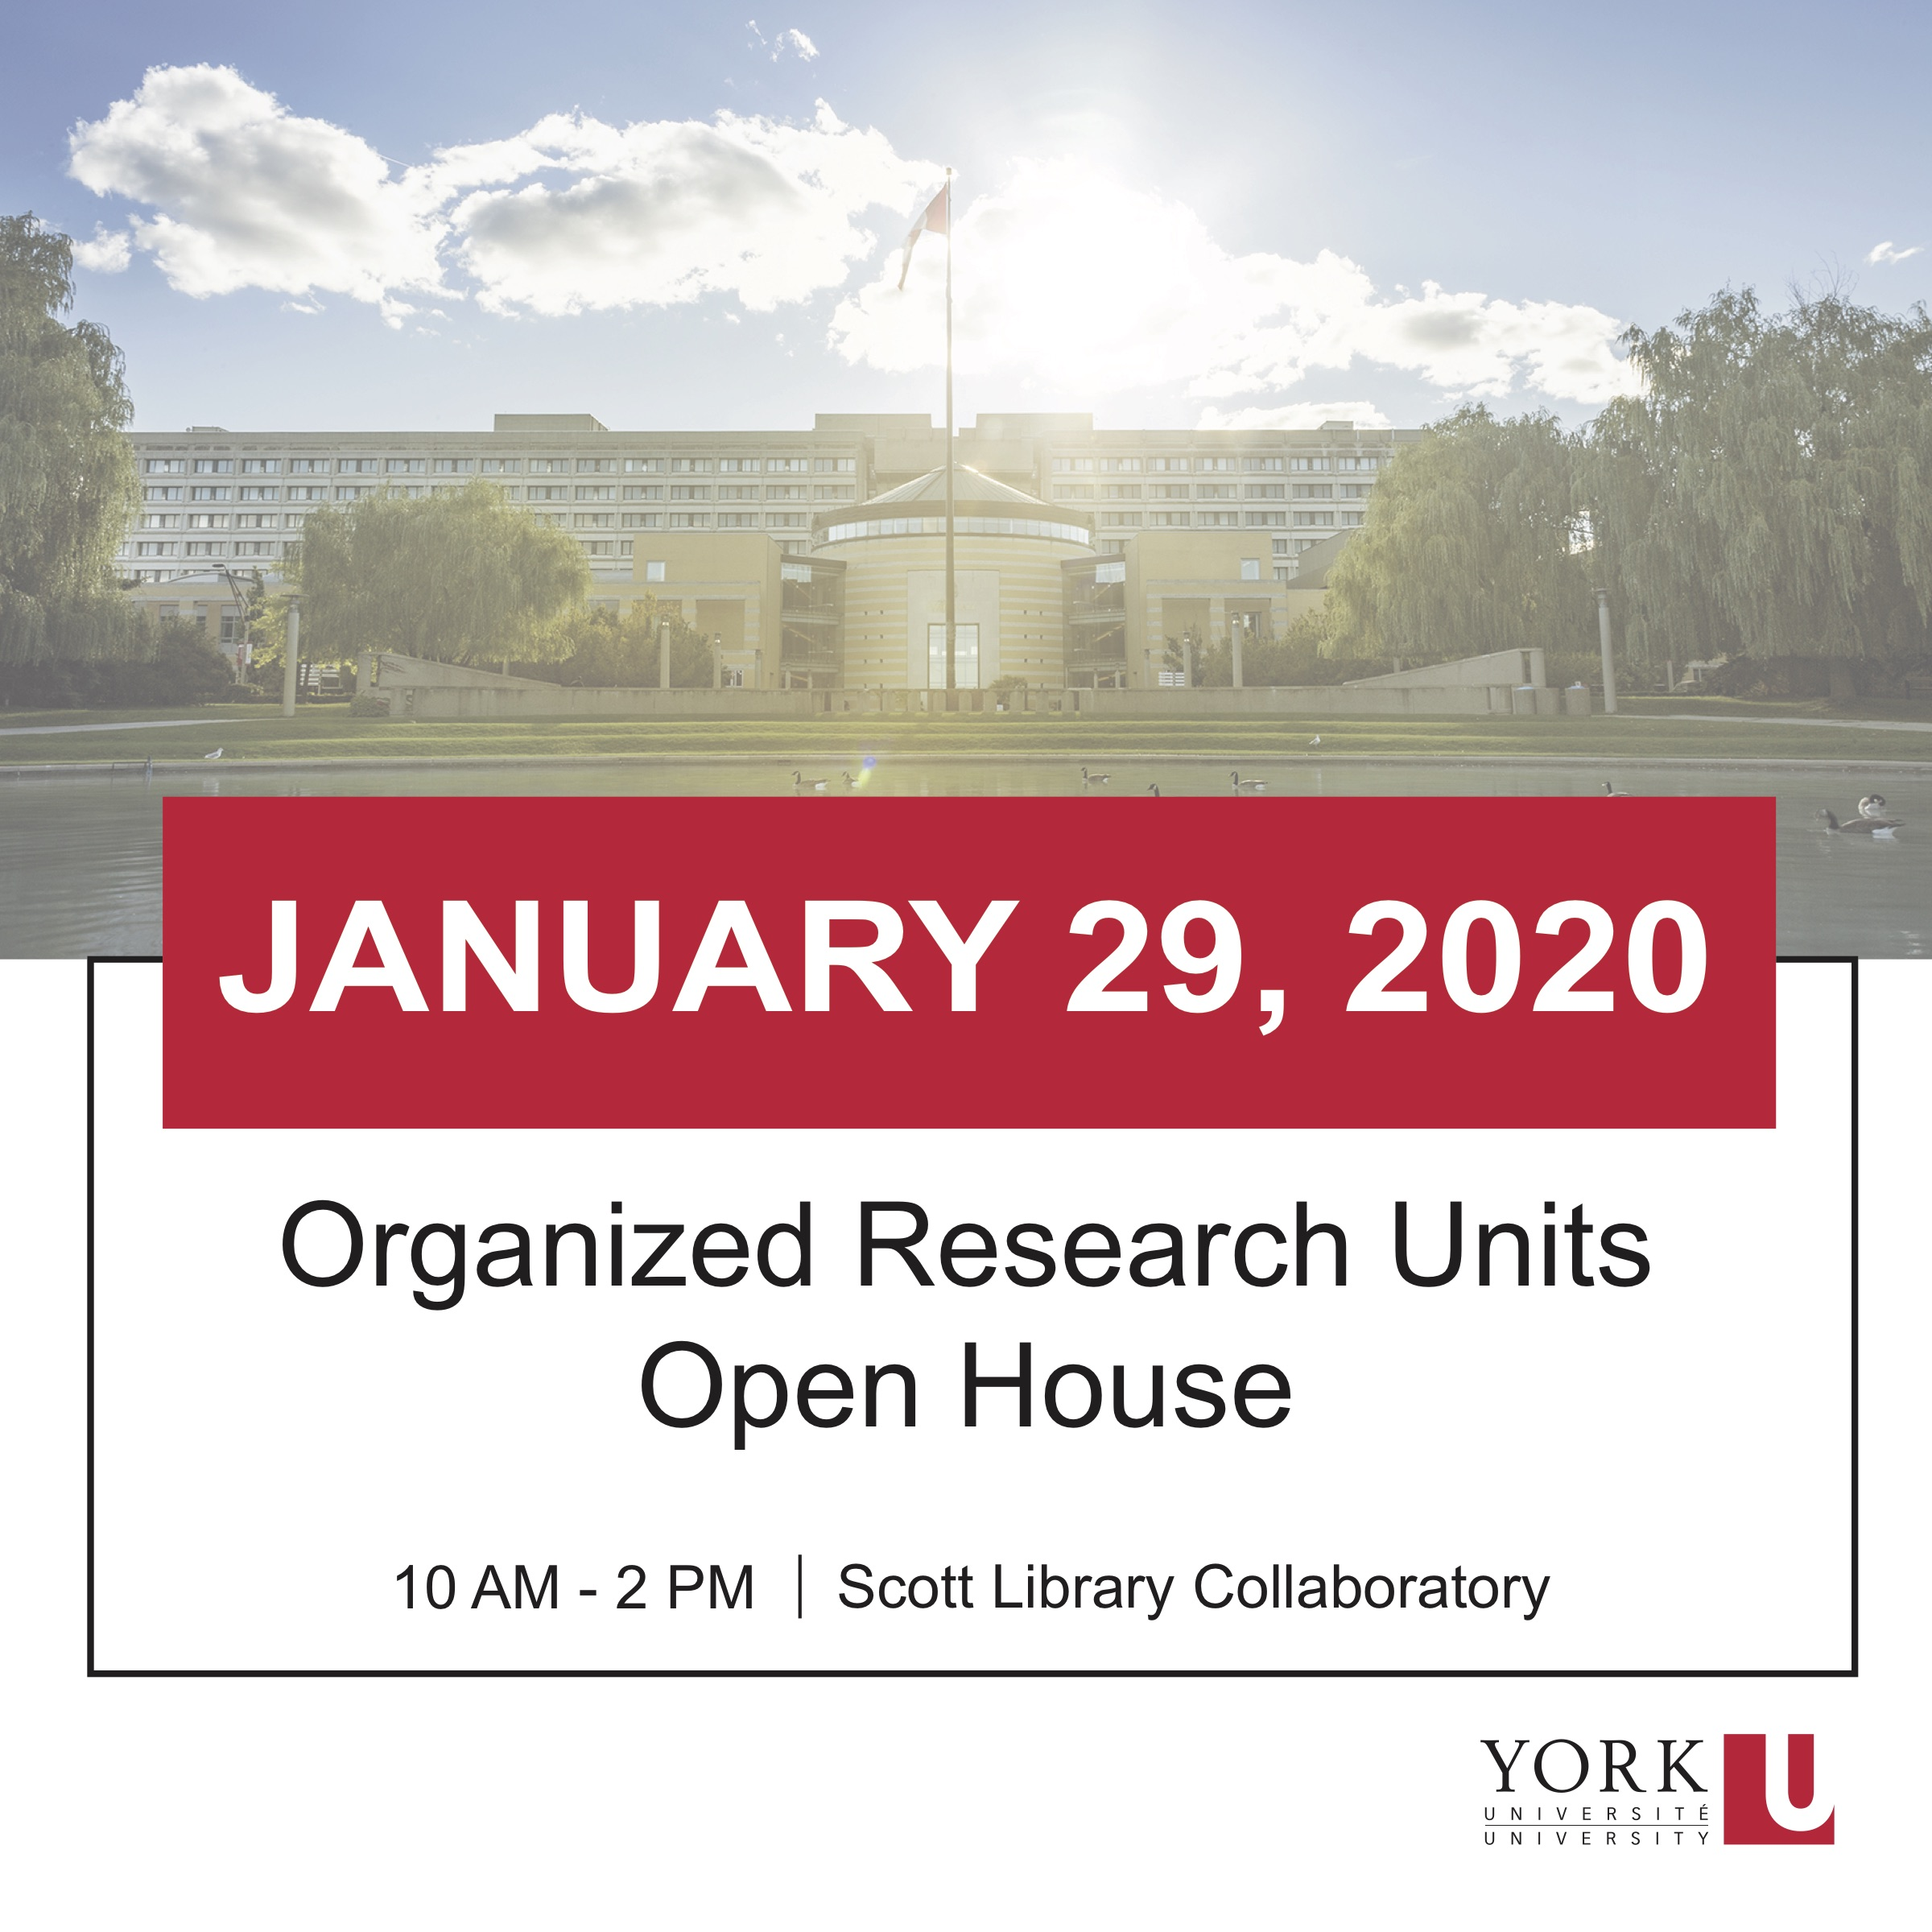 Organized Research Units Open House @ Scott Library Collaboratory